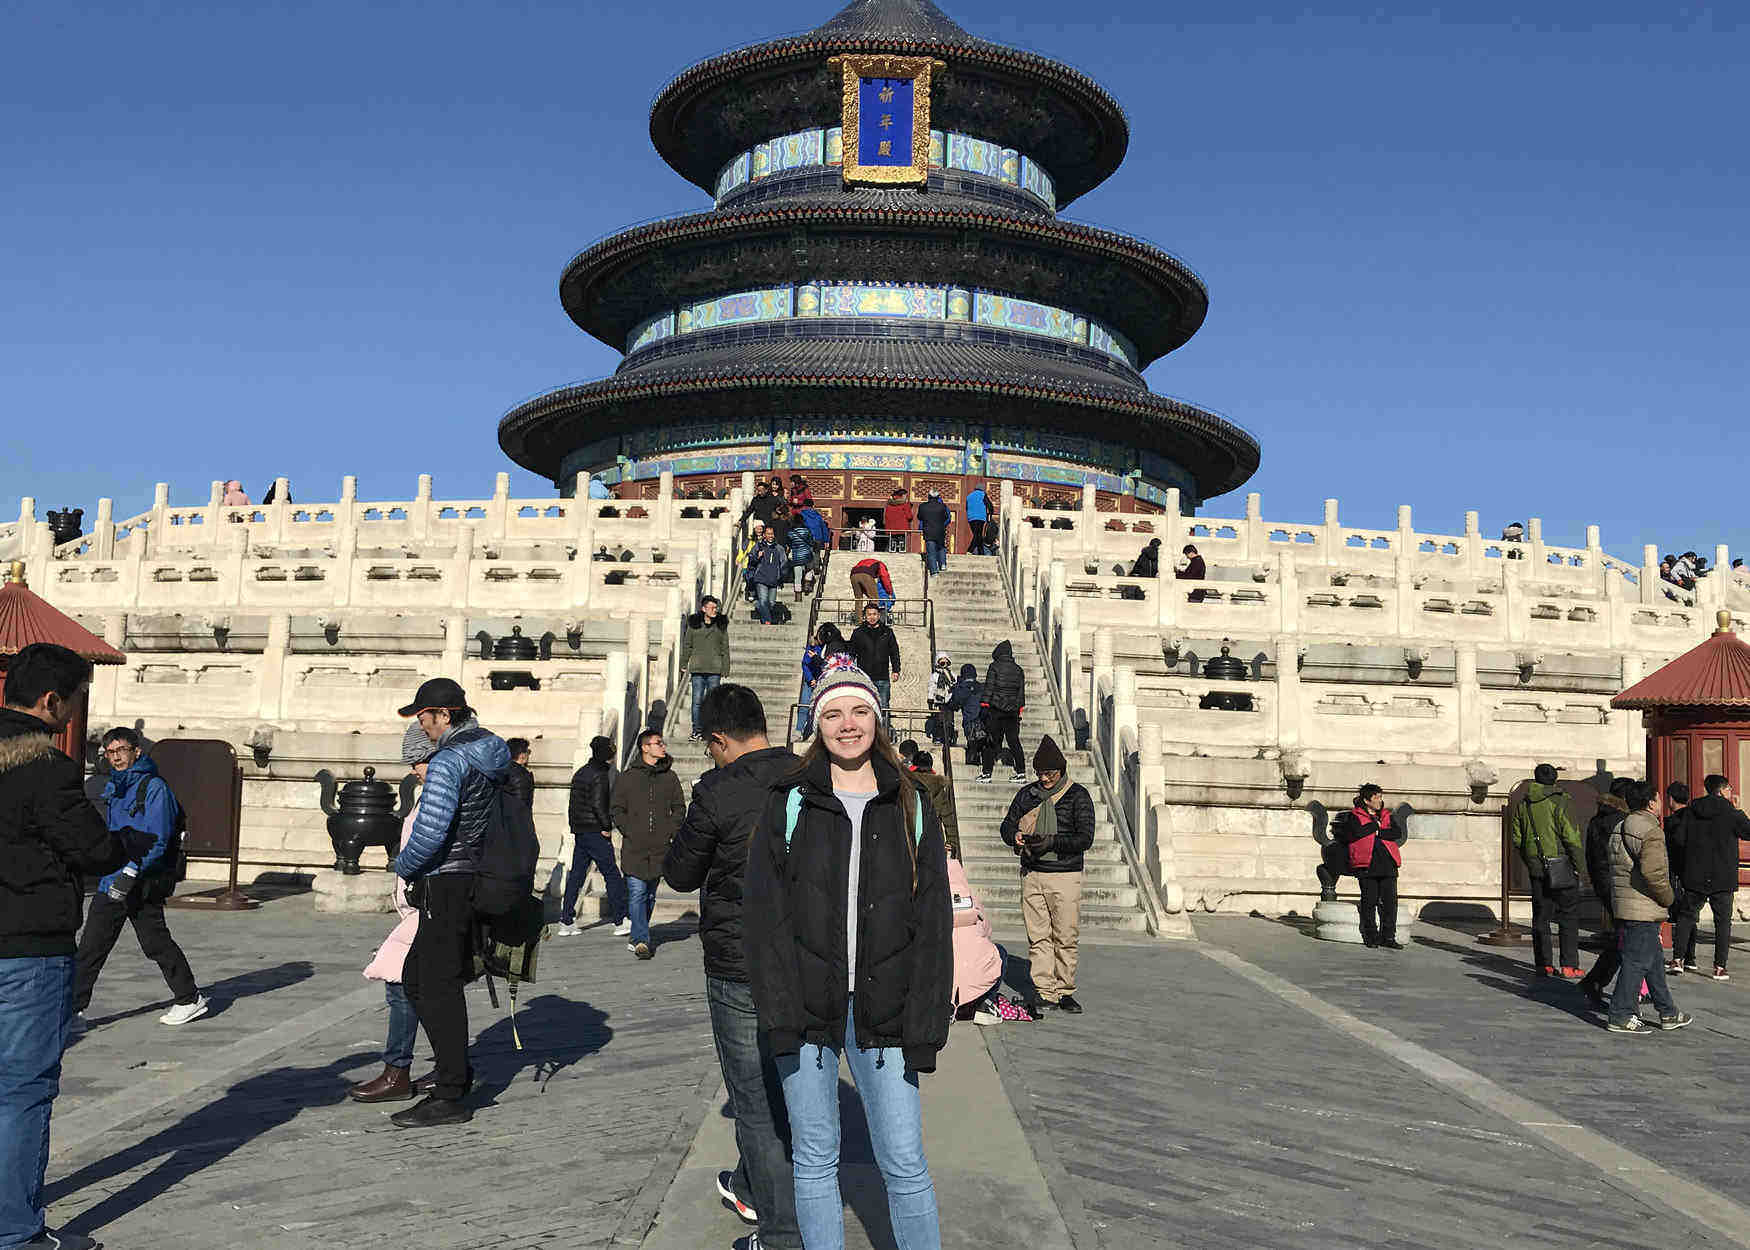 An image of student Manon Sowerby in China